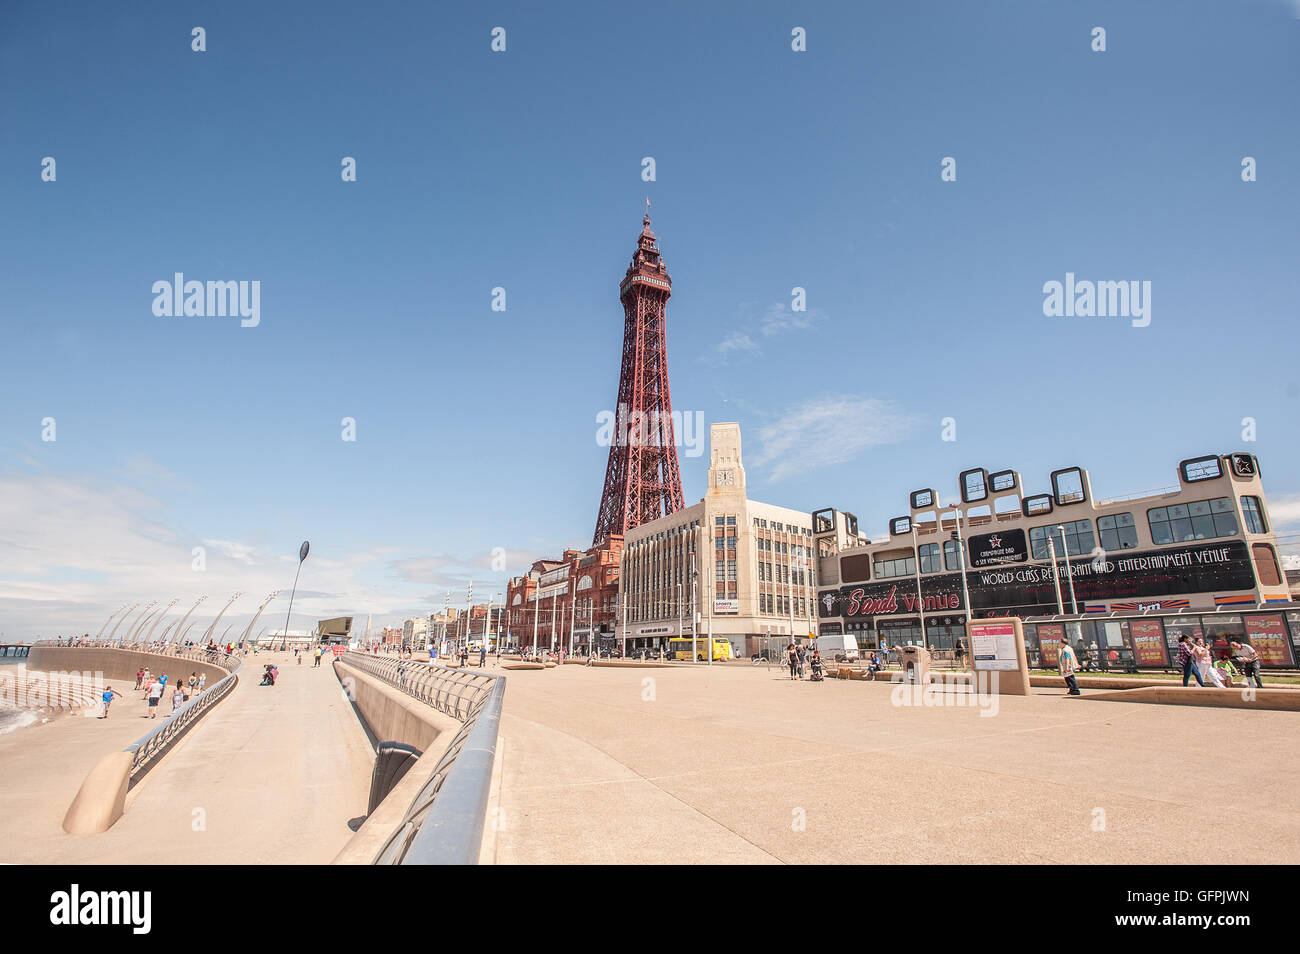 Blackpool Tower - Stock Image